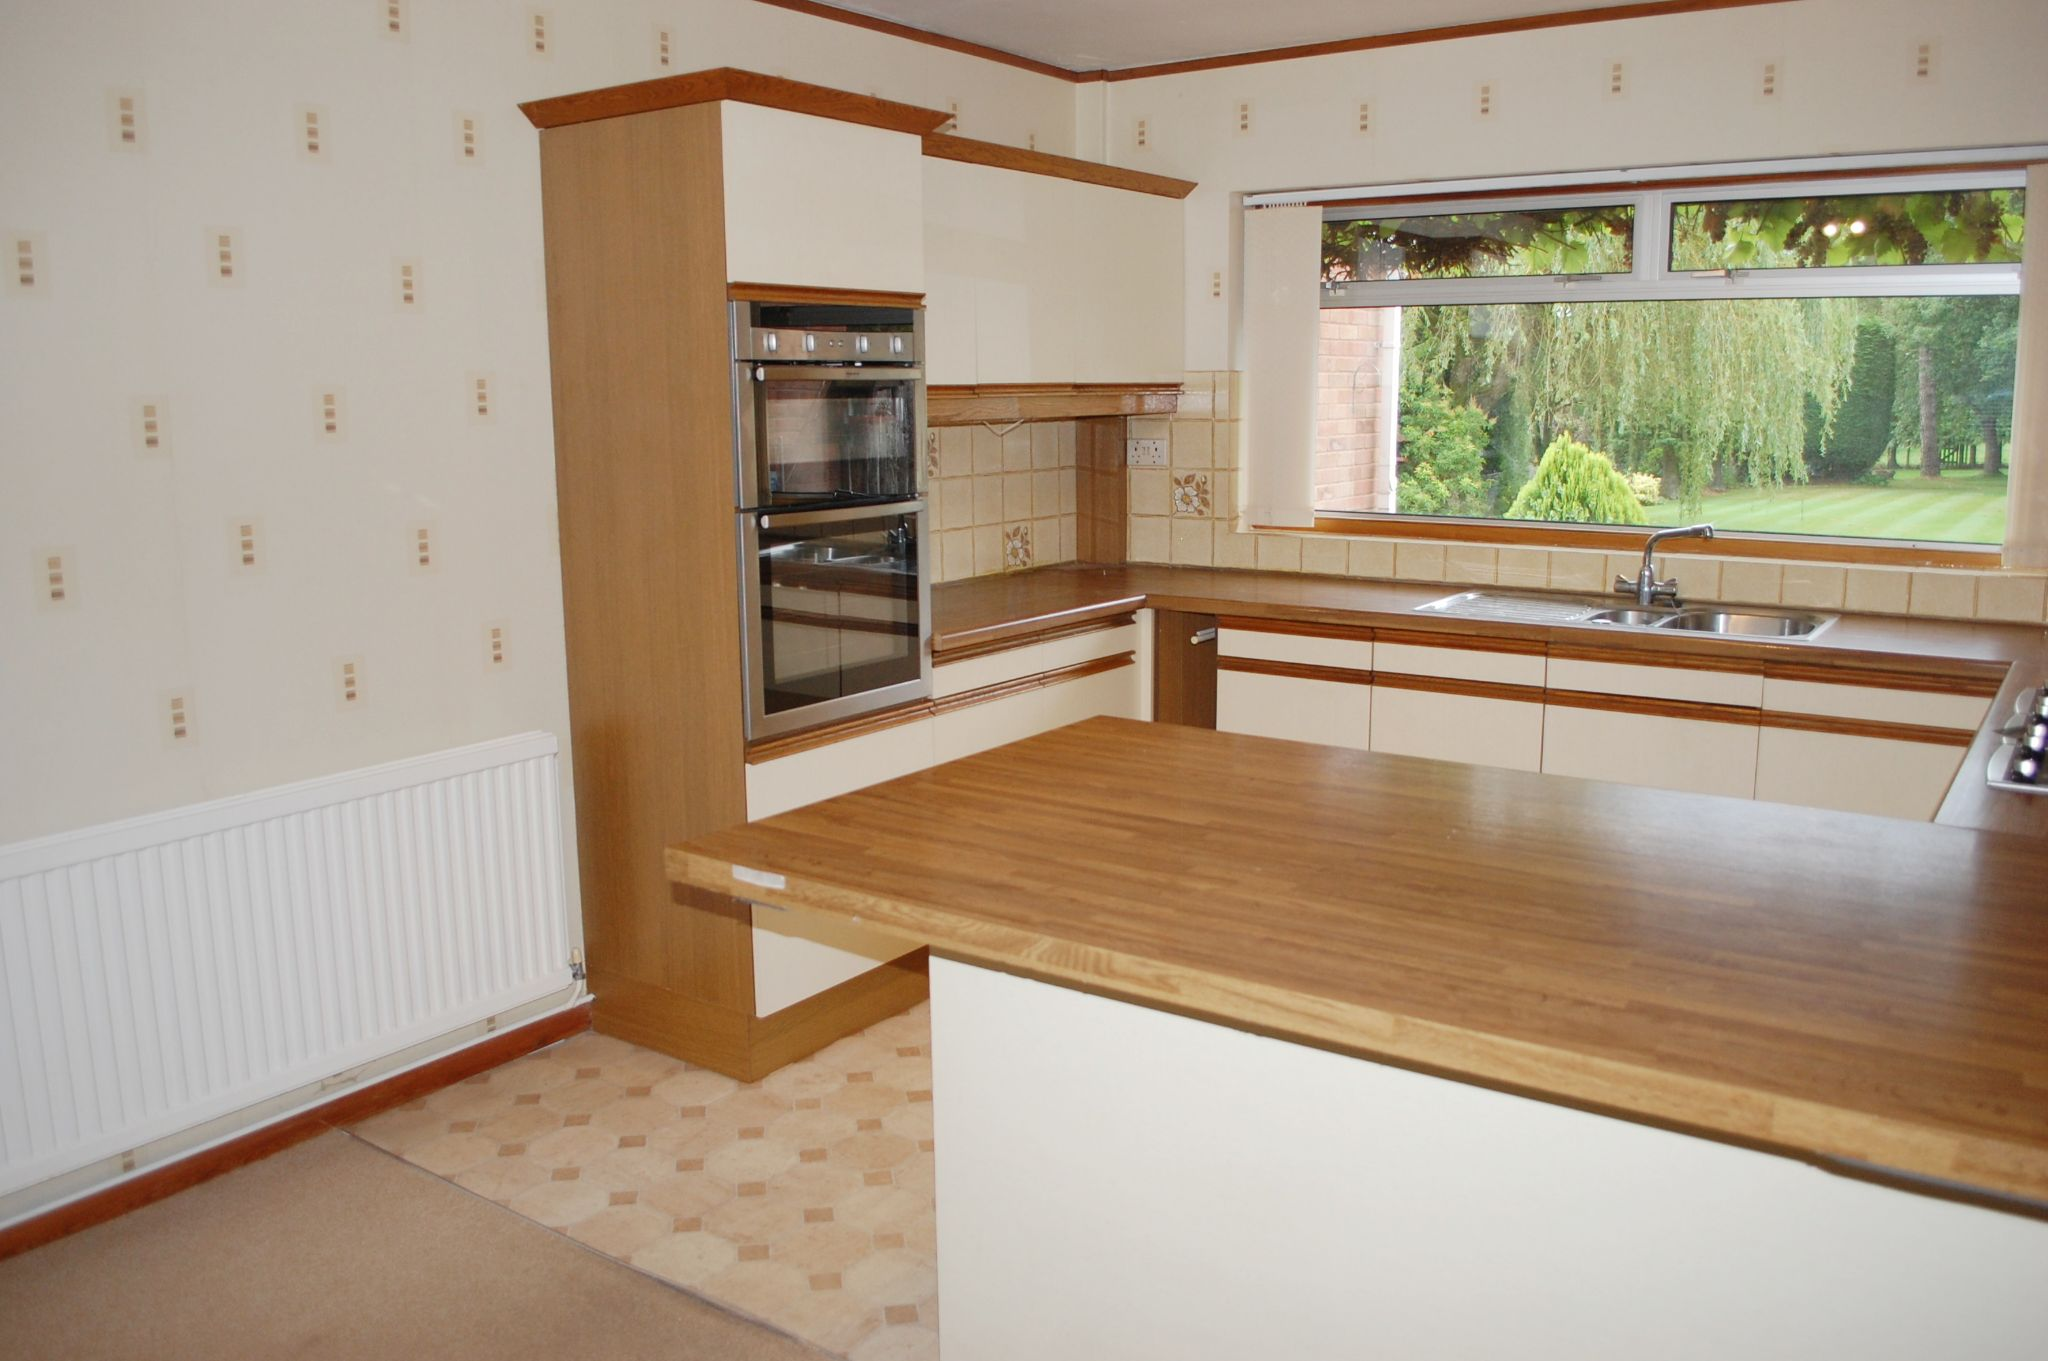 4 bedroom detached house SSTC in Kings Coughton, Alcester - Photograph 7